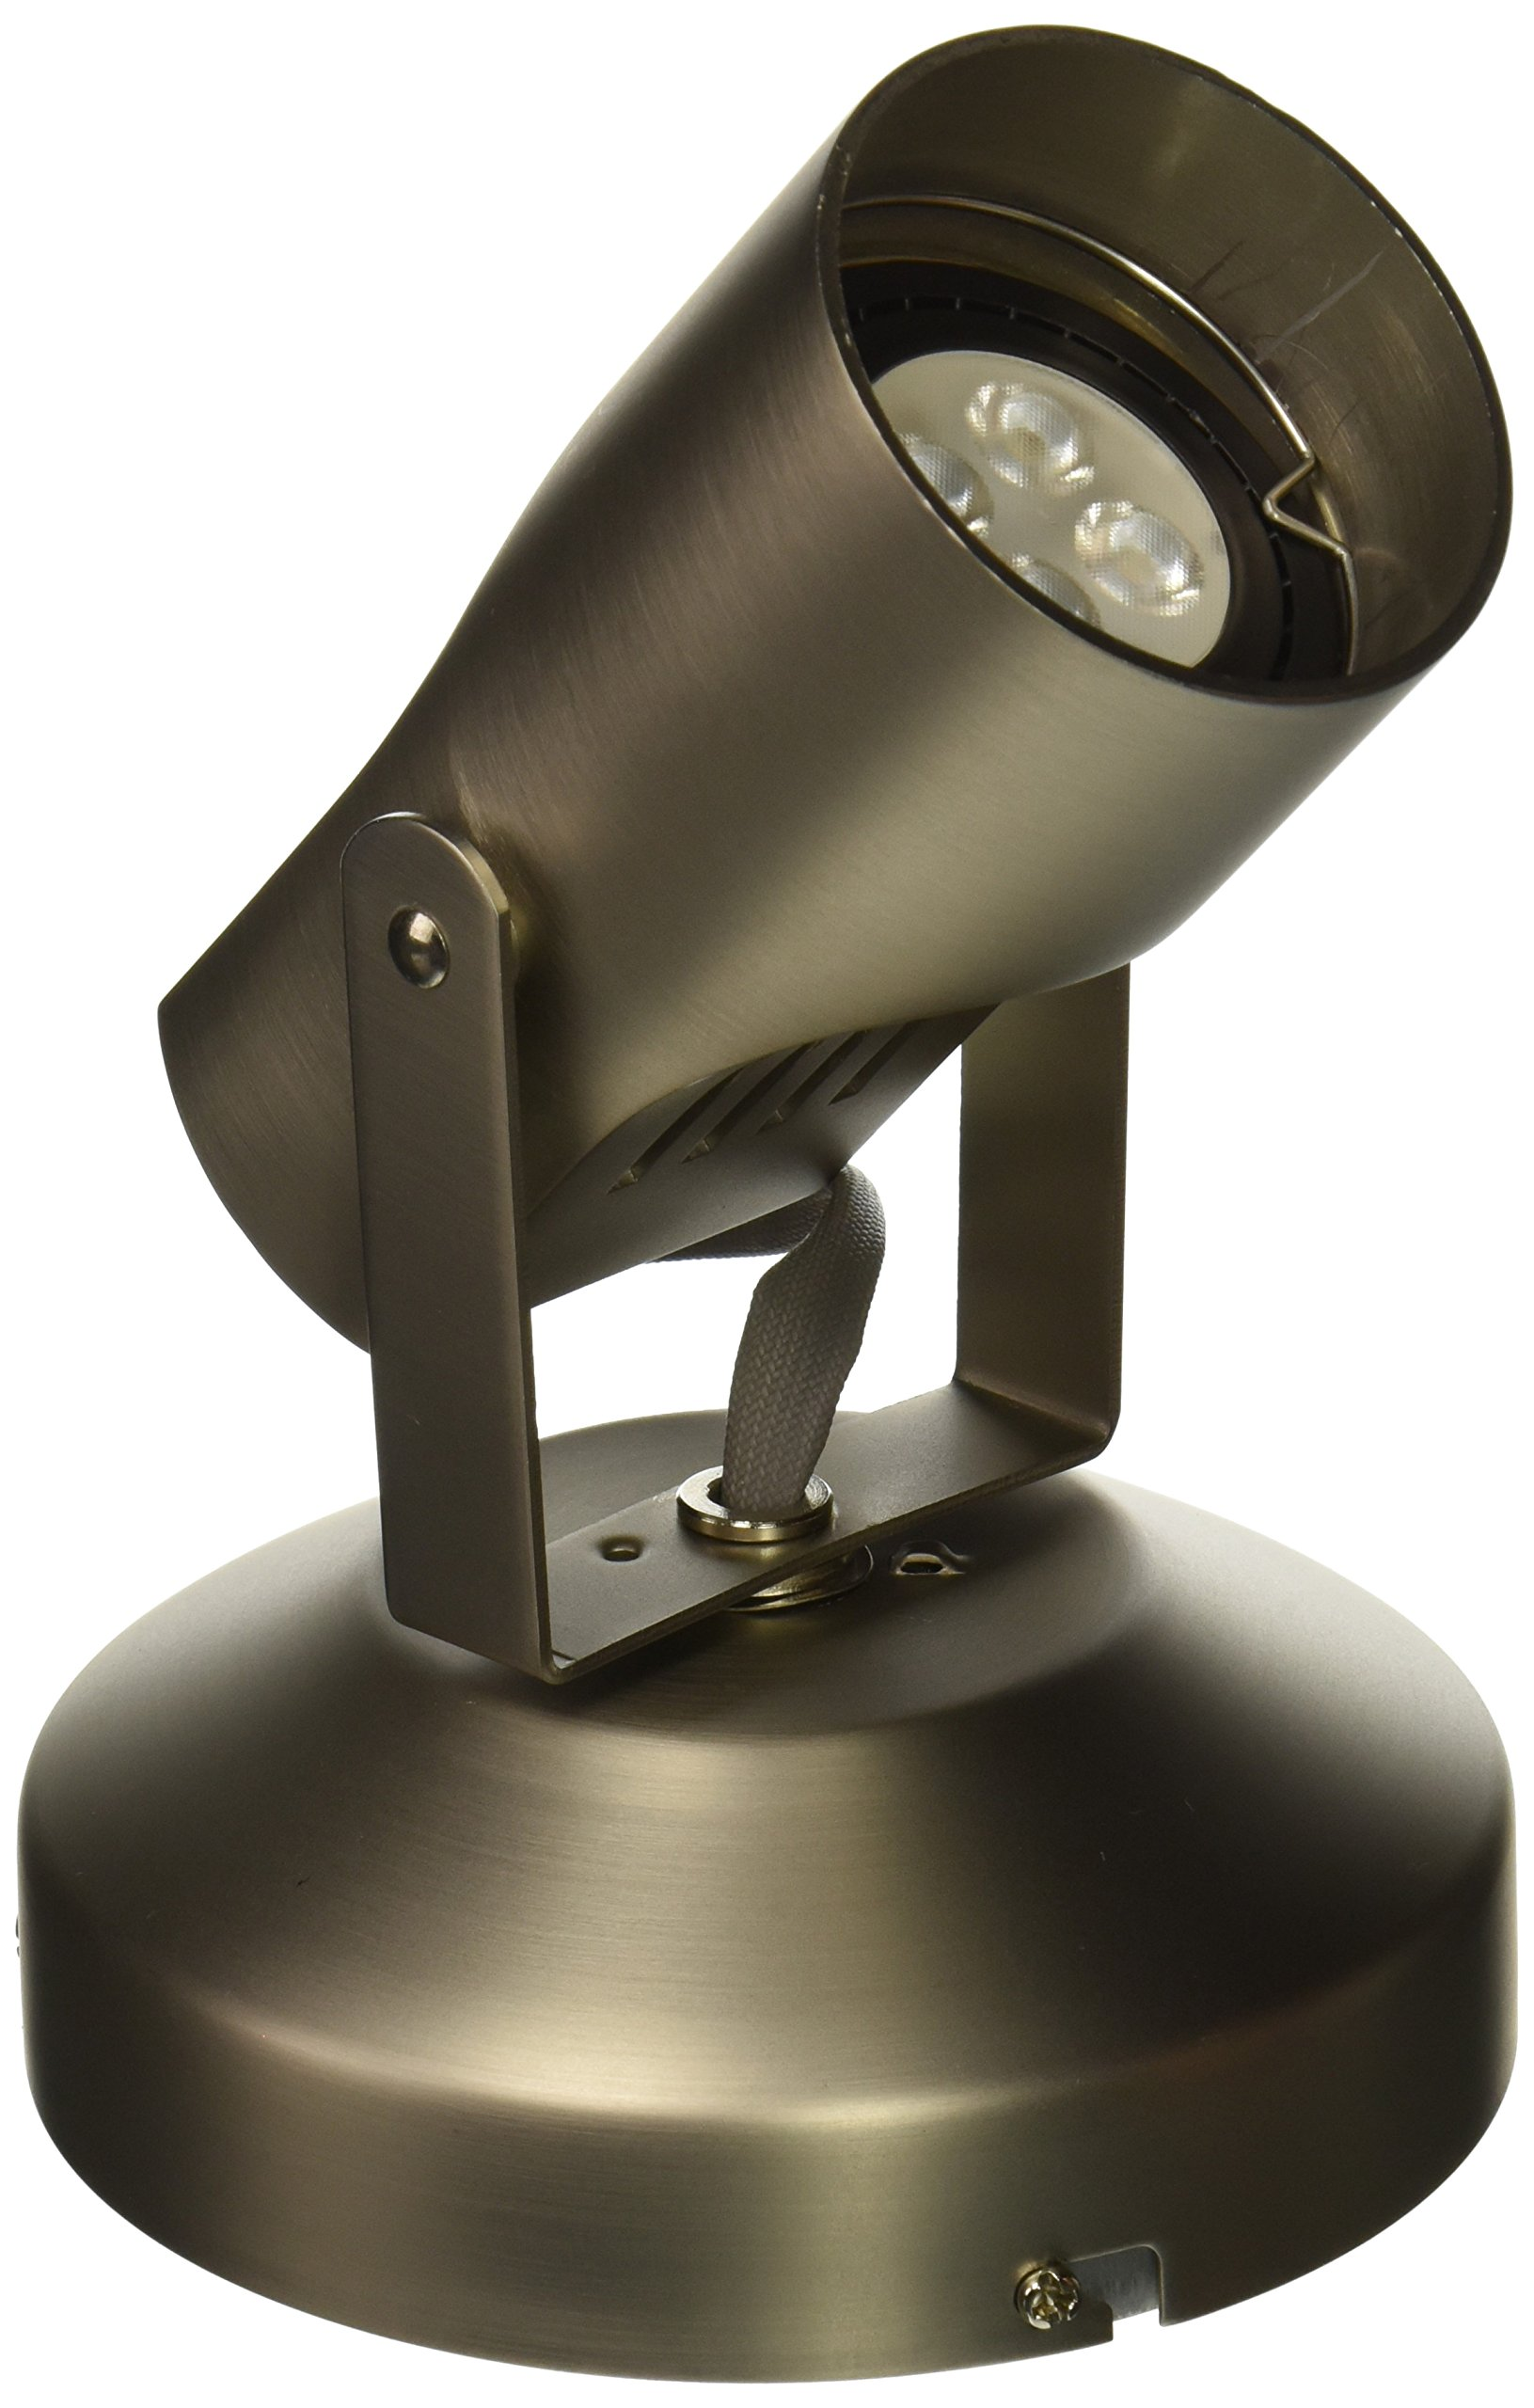 WAC Lighting ME-007LED-BN LED Monopoint 007 Spot Light with LED Lamp Included, Brushed Nickel